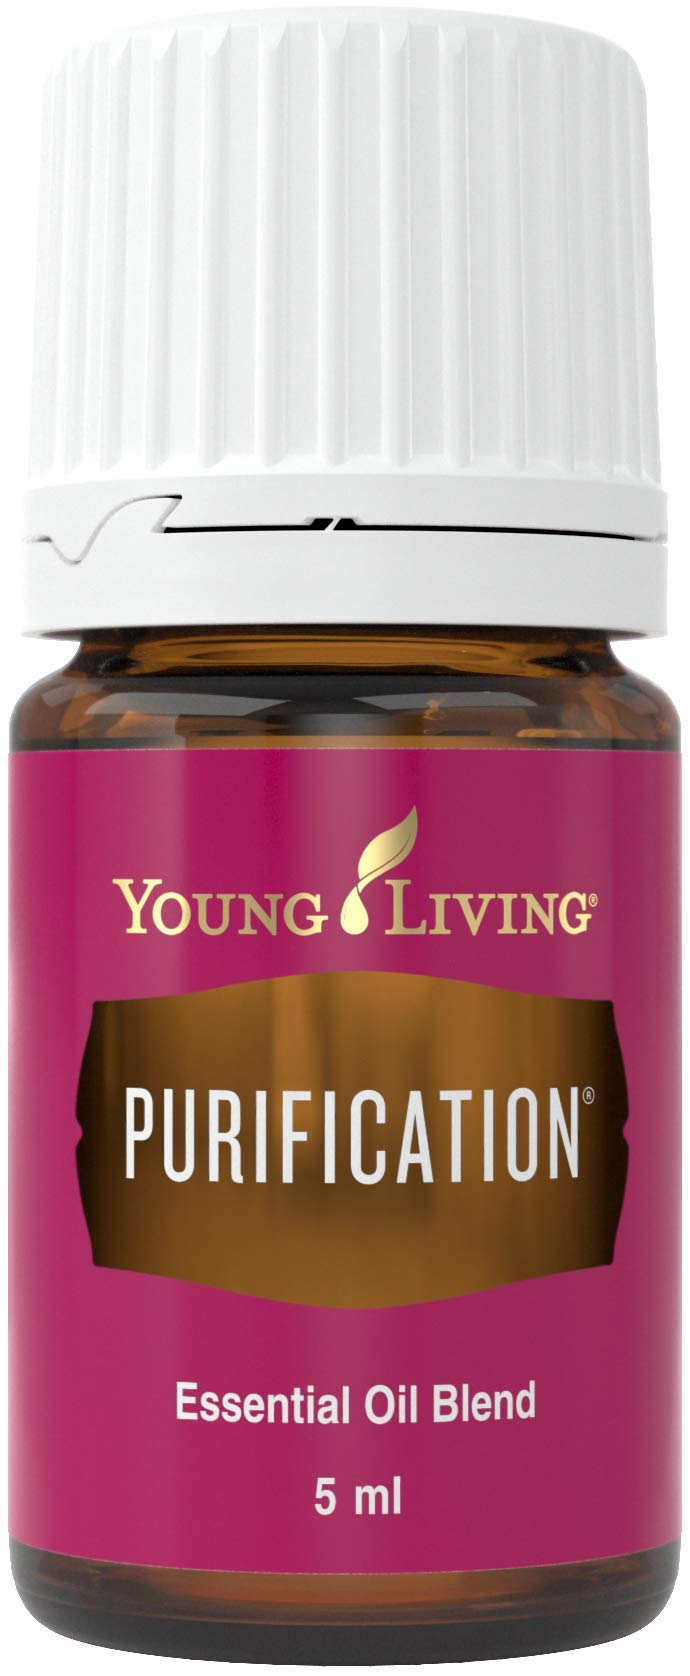 Purification Essential Oils 5ml by Young Living Essential Oils